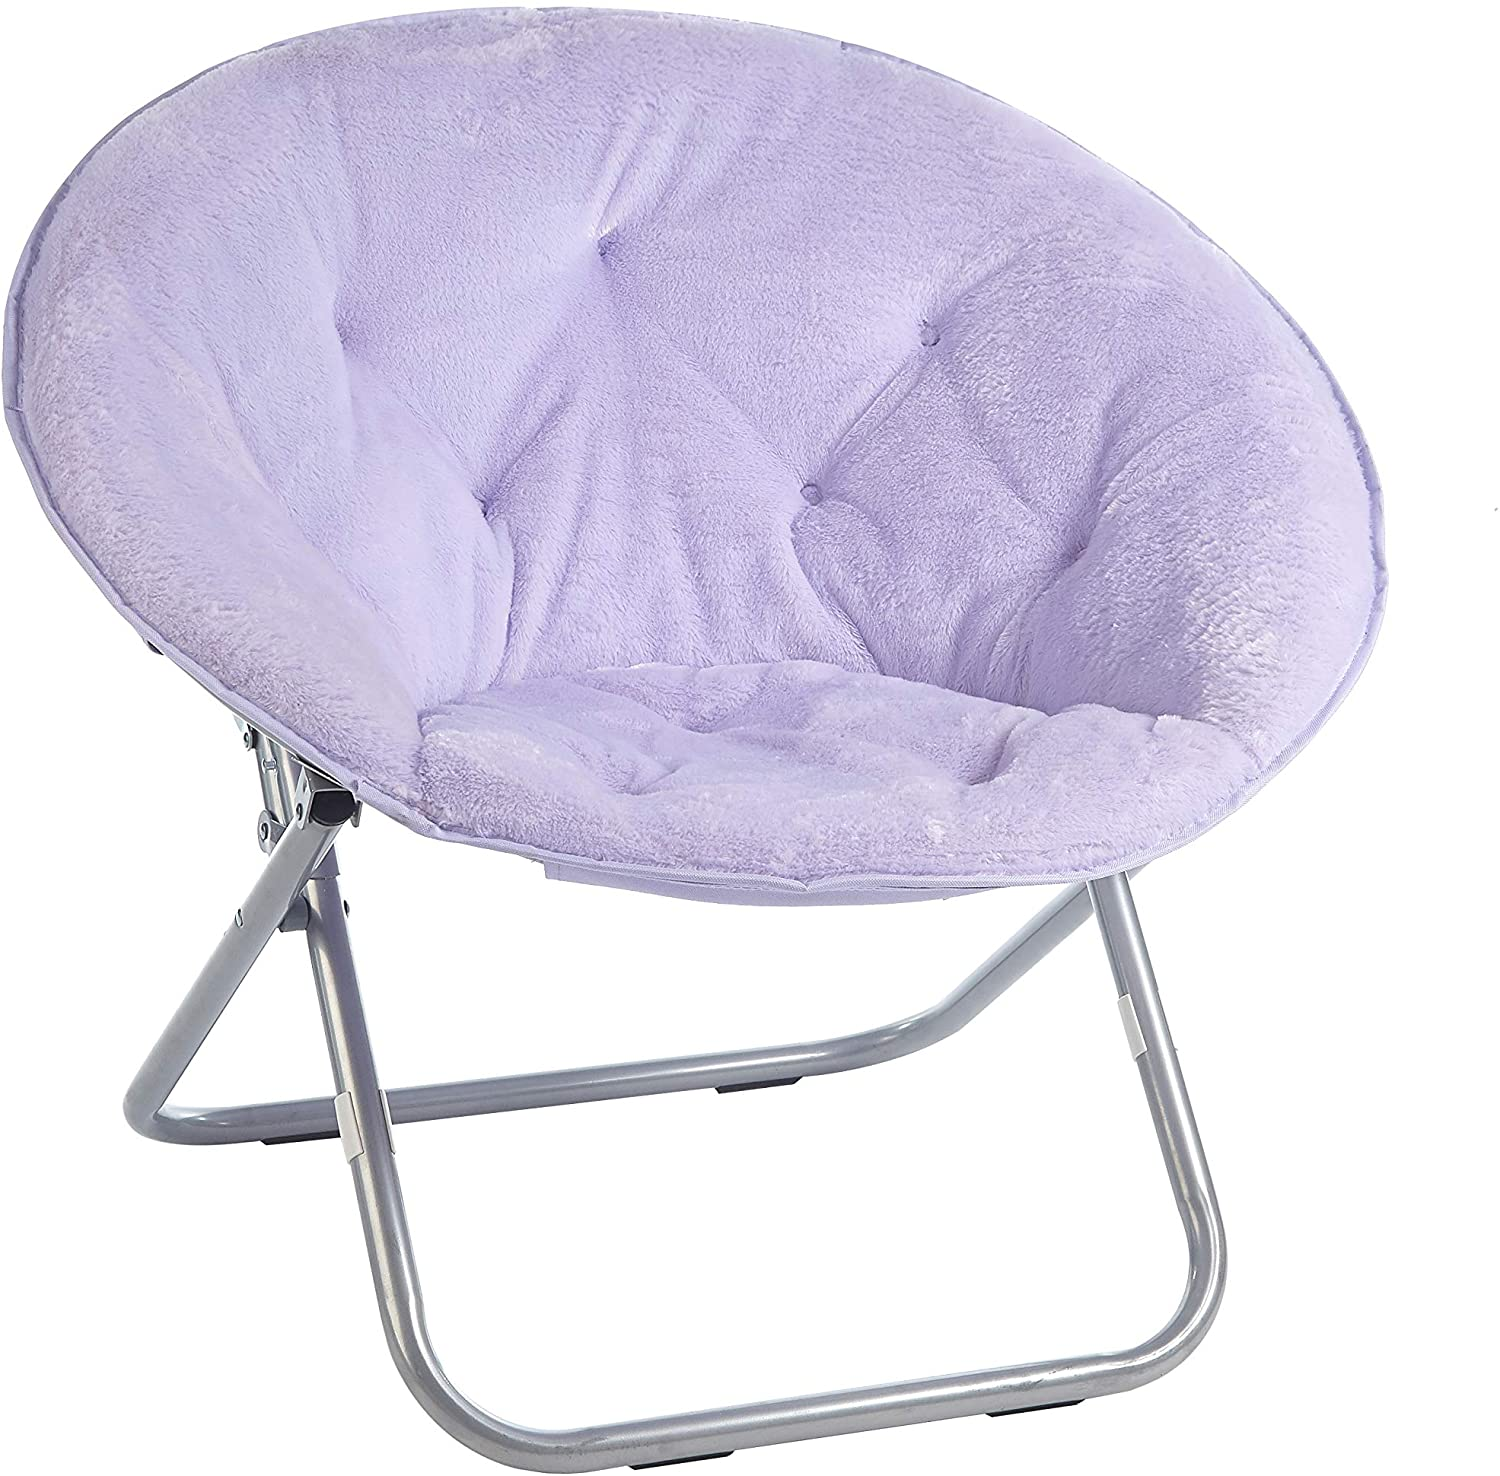 Urban Shop Faux Fur Saucer Chair with Metal Frame, Lavender